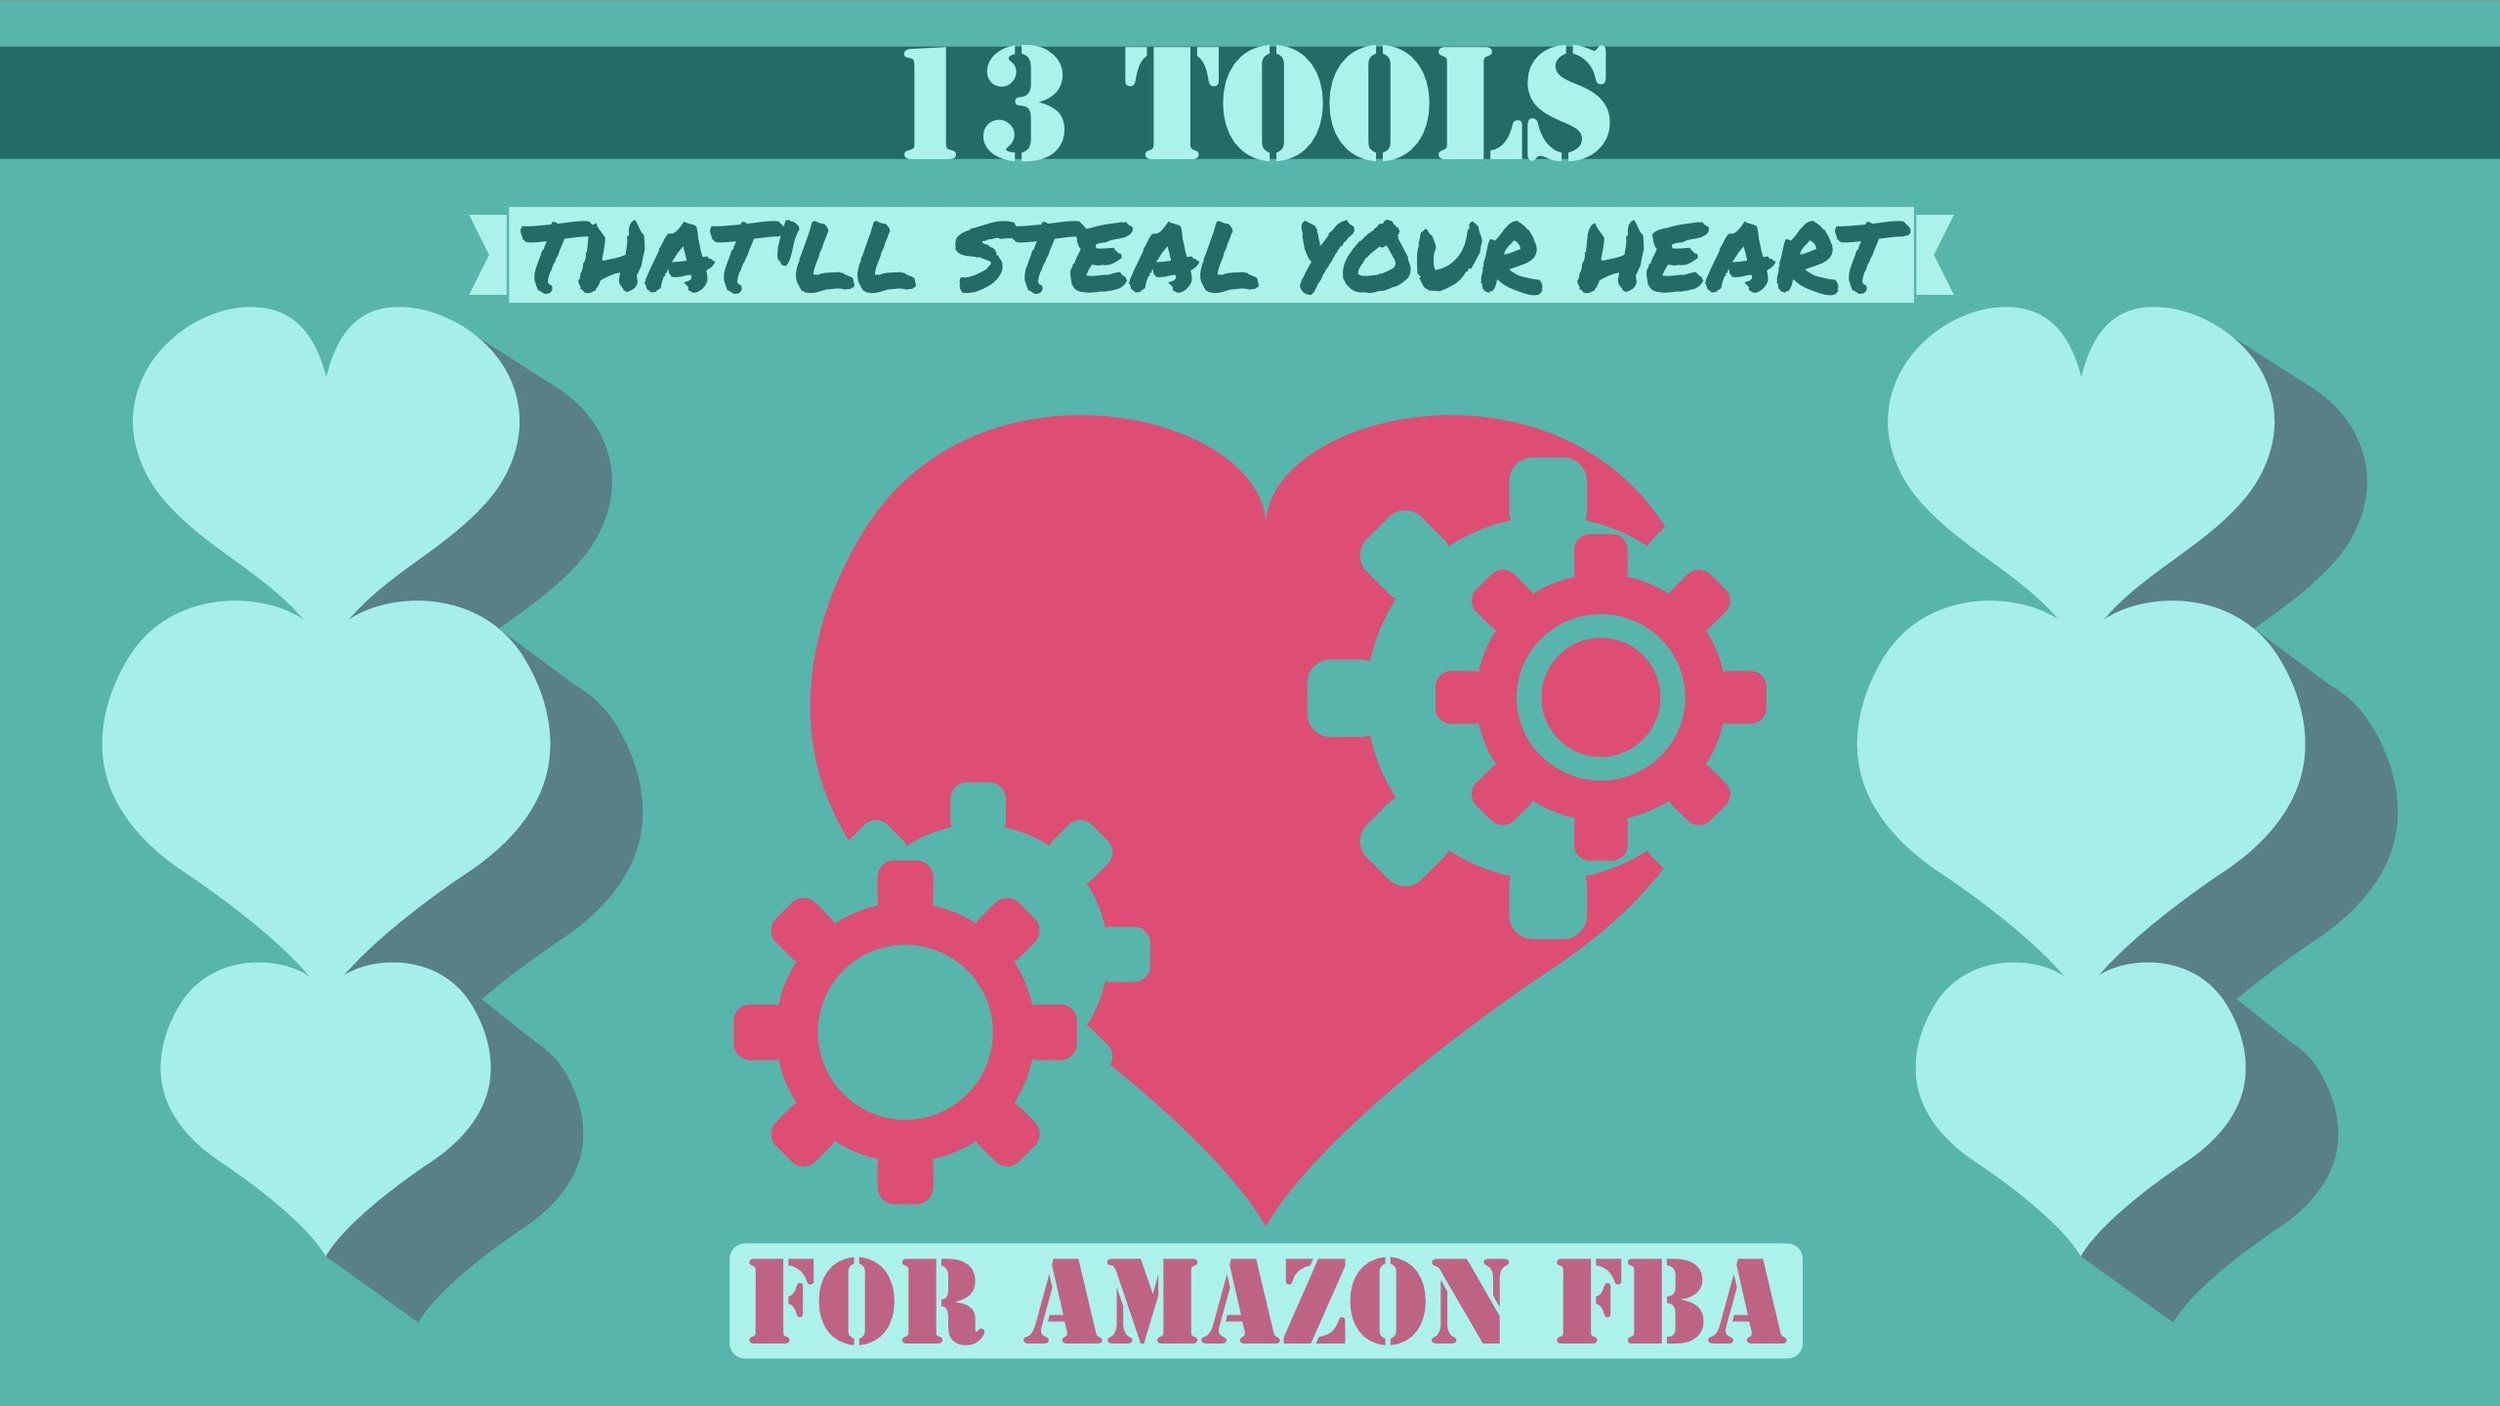 CLICK THE IMAGE TO GET YOUR LIST OF LOVELY TOOLS!